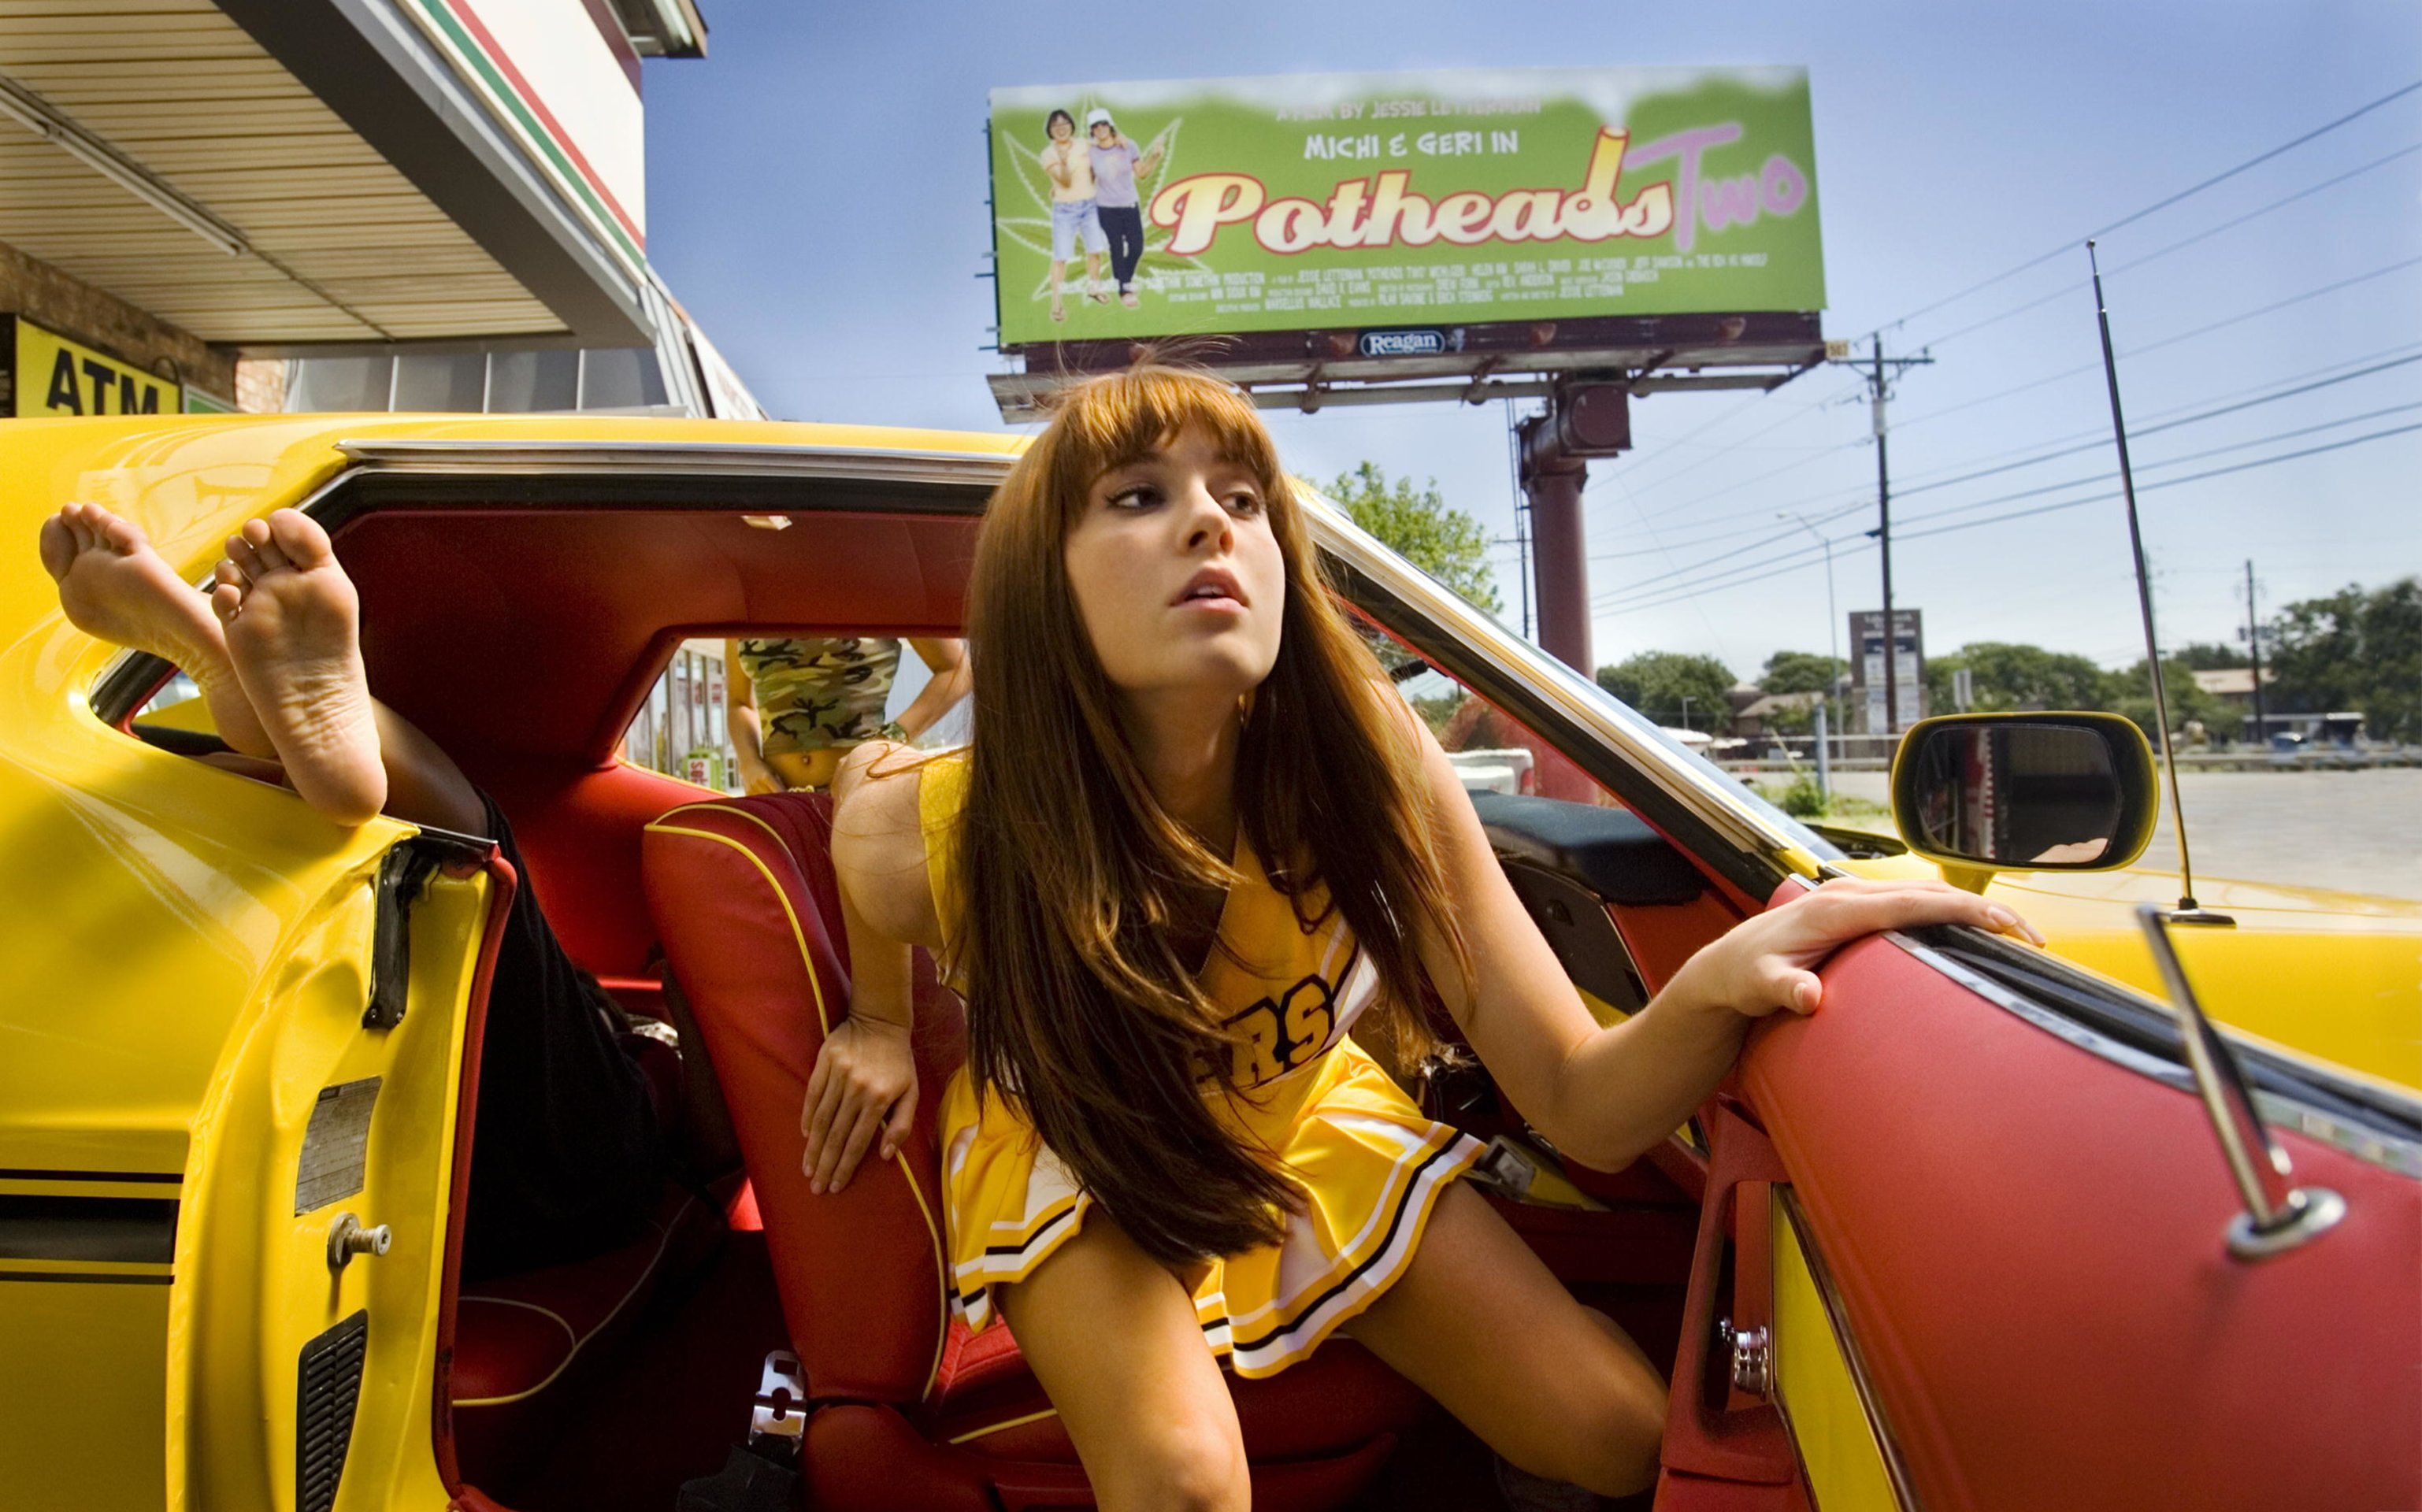 Lee montgomery mary elizabeth winstead death proof fictional characters pinterest death proof quentin tarantino and fictional characters